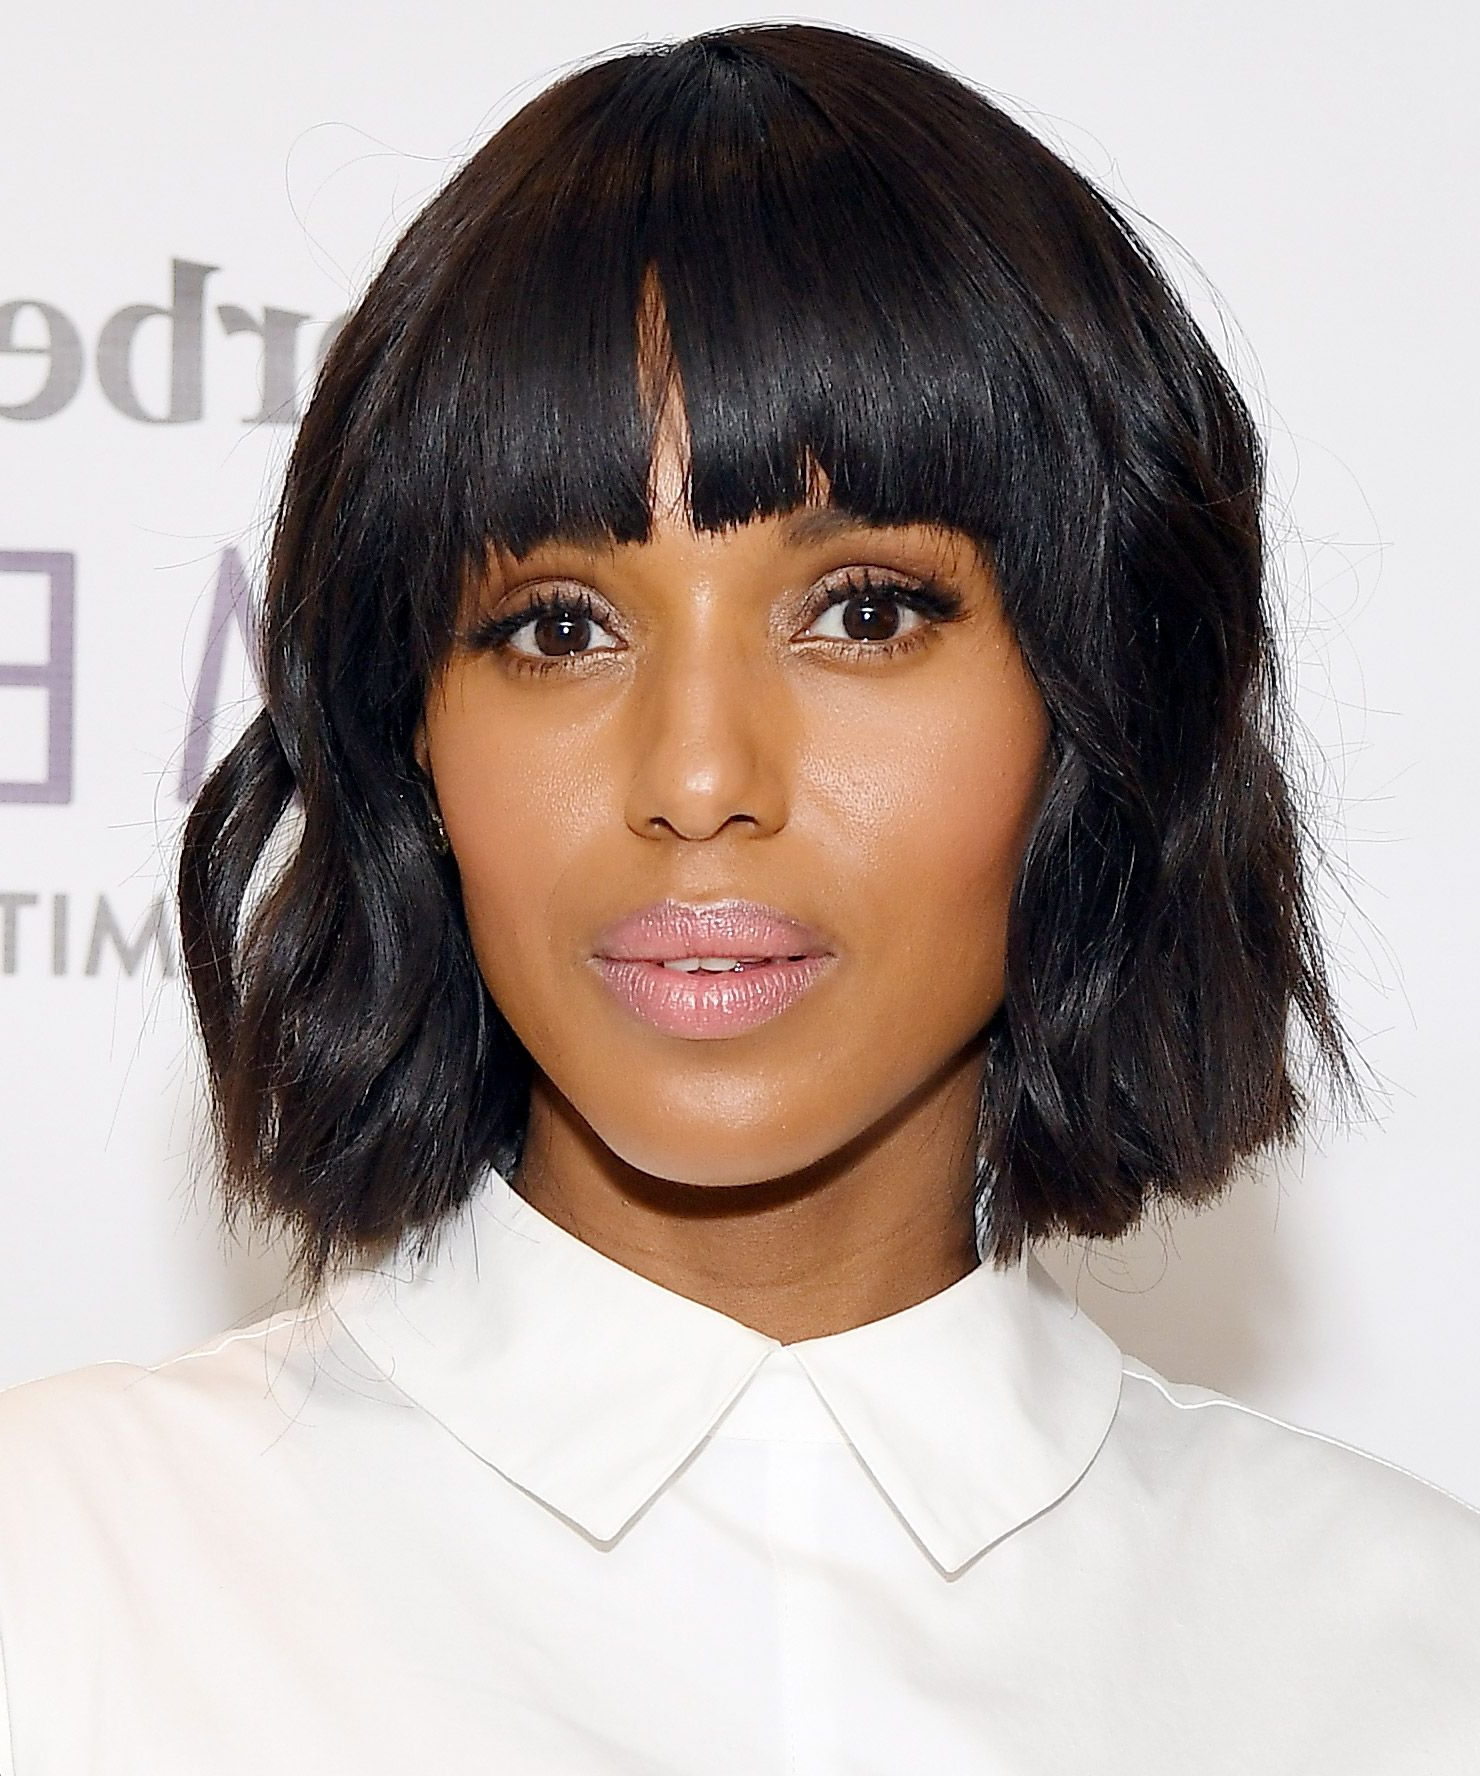 Well Known Simple Bob Hairstyles With Shaped Bangs Regarding How To Find The Best Bob For Your Face Shape (Gallery 7 of 20)